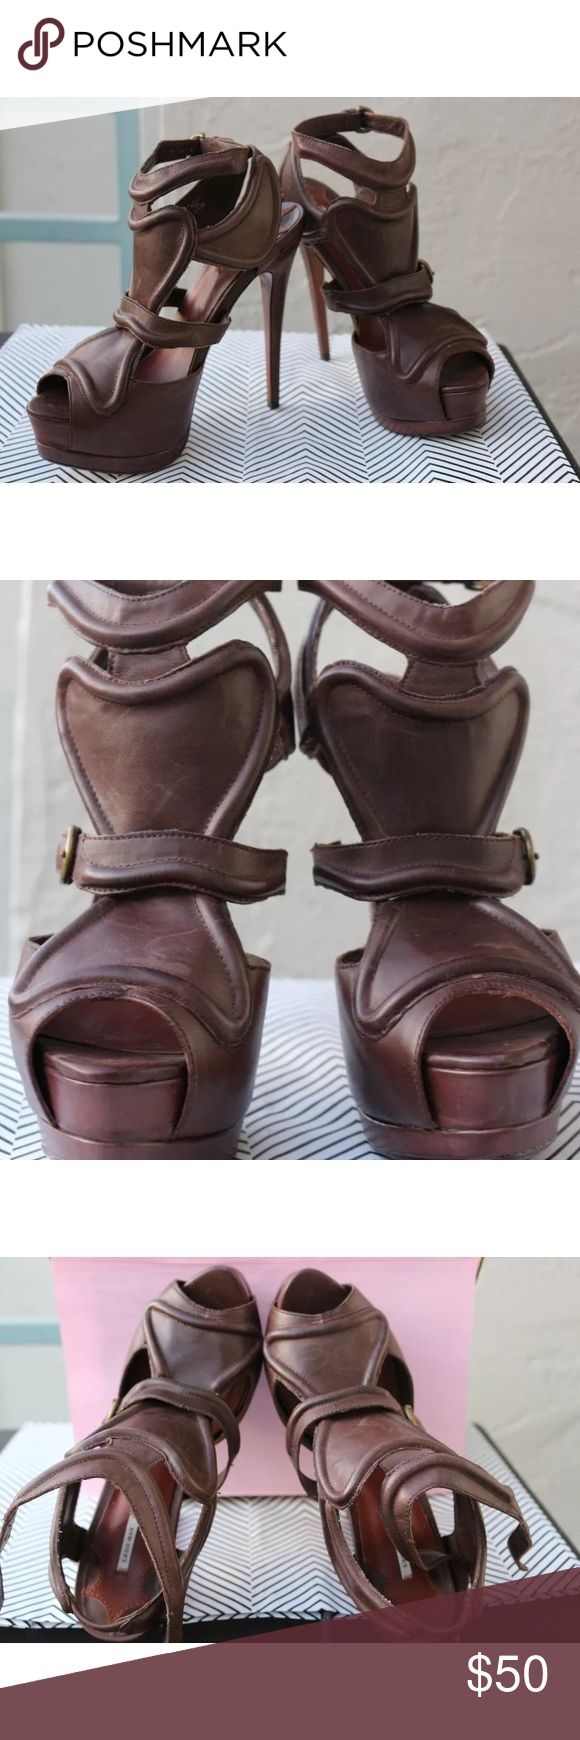 """LEON MAX BRAVO 7.5 M Gladiator Ankle Strap Platfor LEON MAX BRAVO 7.5 M Gladiator Ankle Strap Platform Brown Leather Heel Sandals  With normal wear. Heels are 5"""" leon Max Bravo Shoes Heels"""